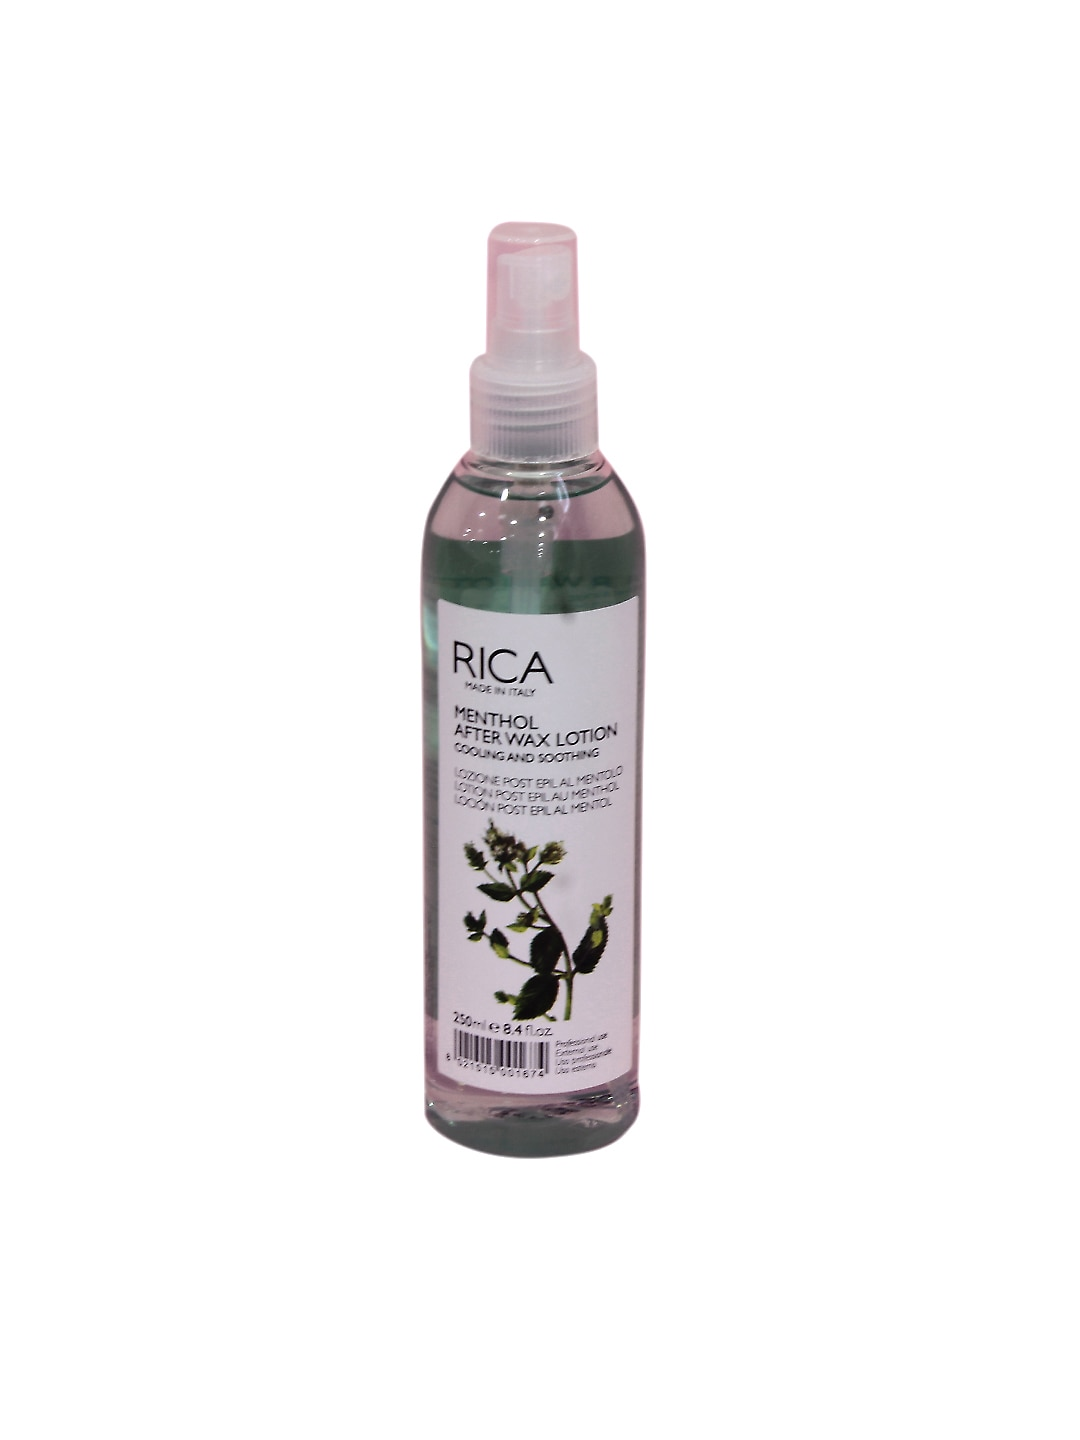 RICA Unisex Menthol After Wax Lotion image